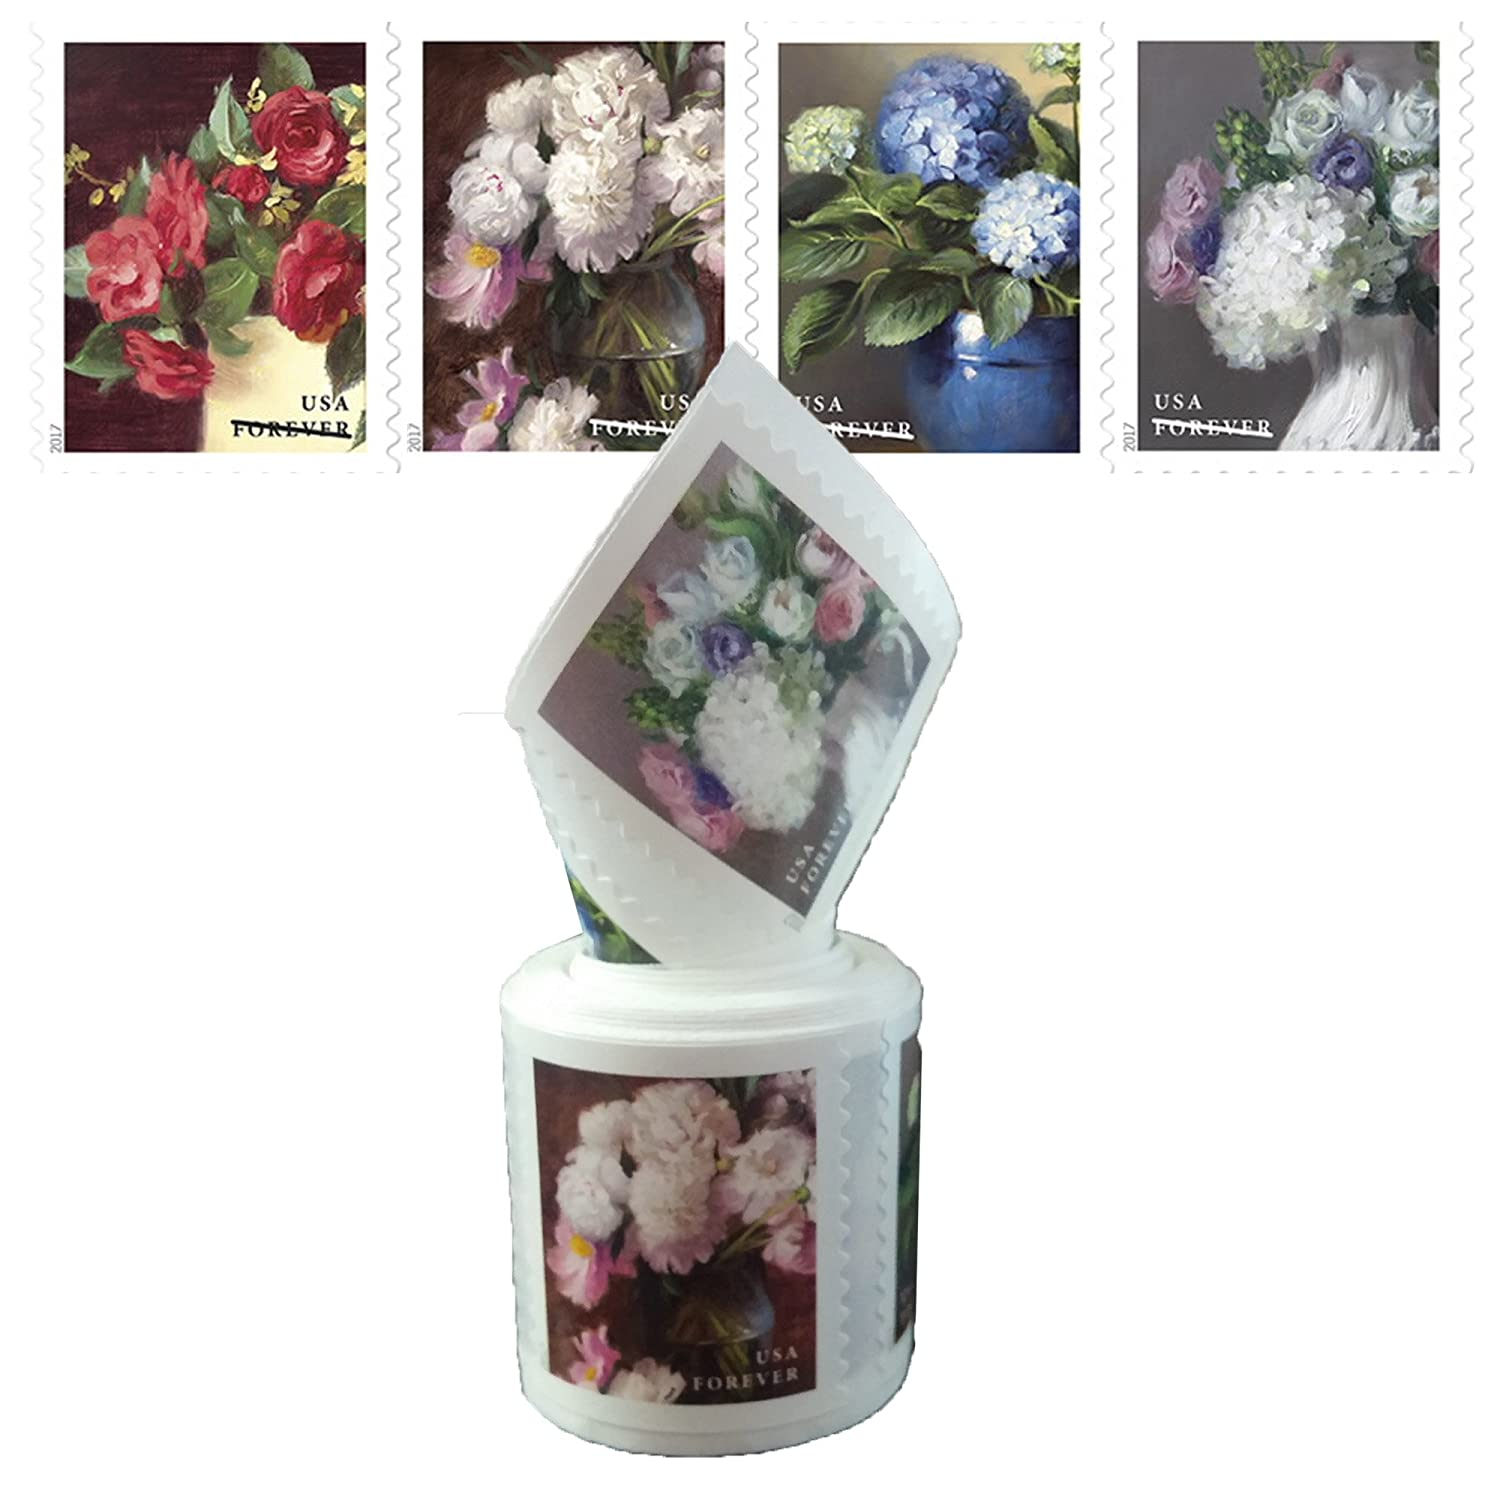 Cheap Flowers From The Garden 1 Coil Of 100 Usps First Class Postage